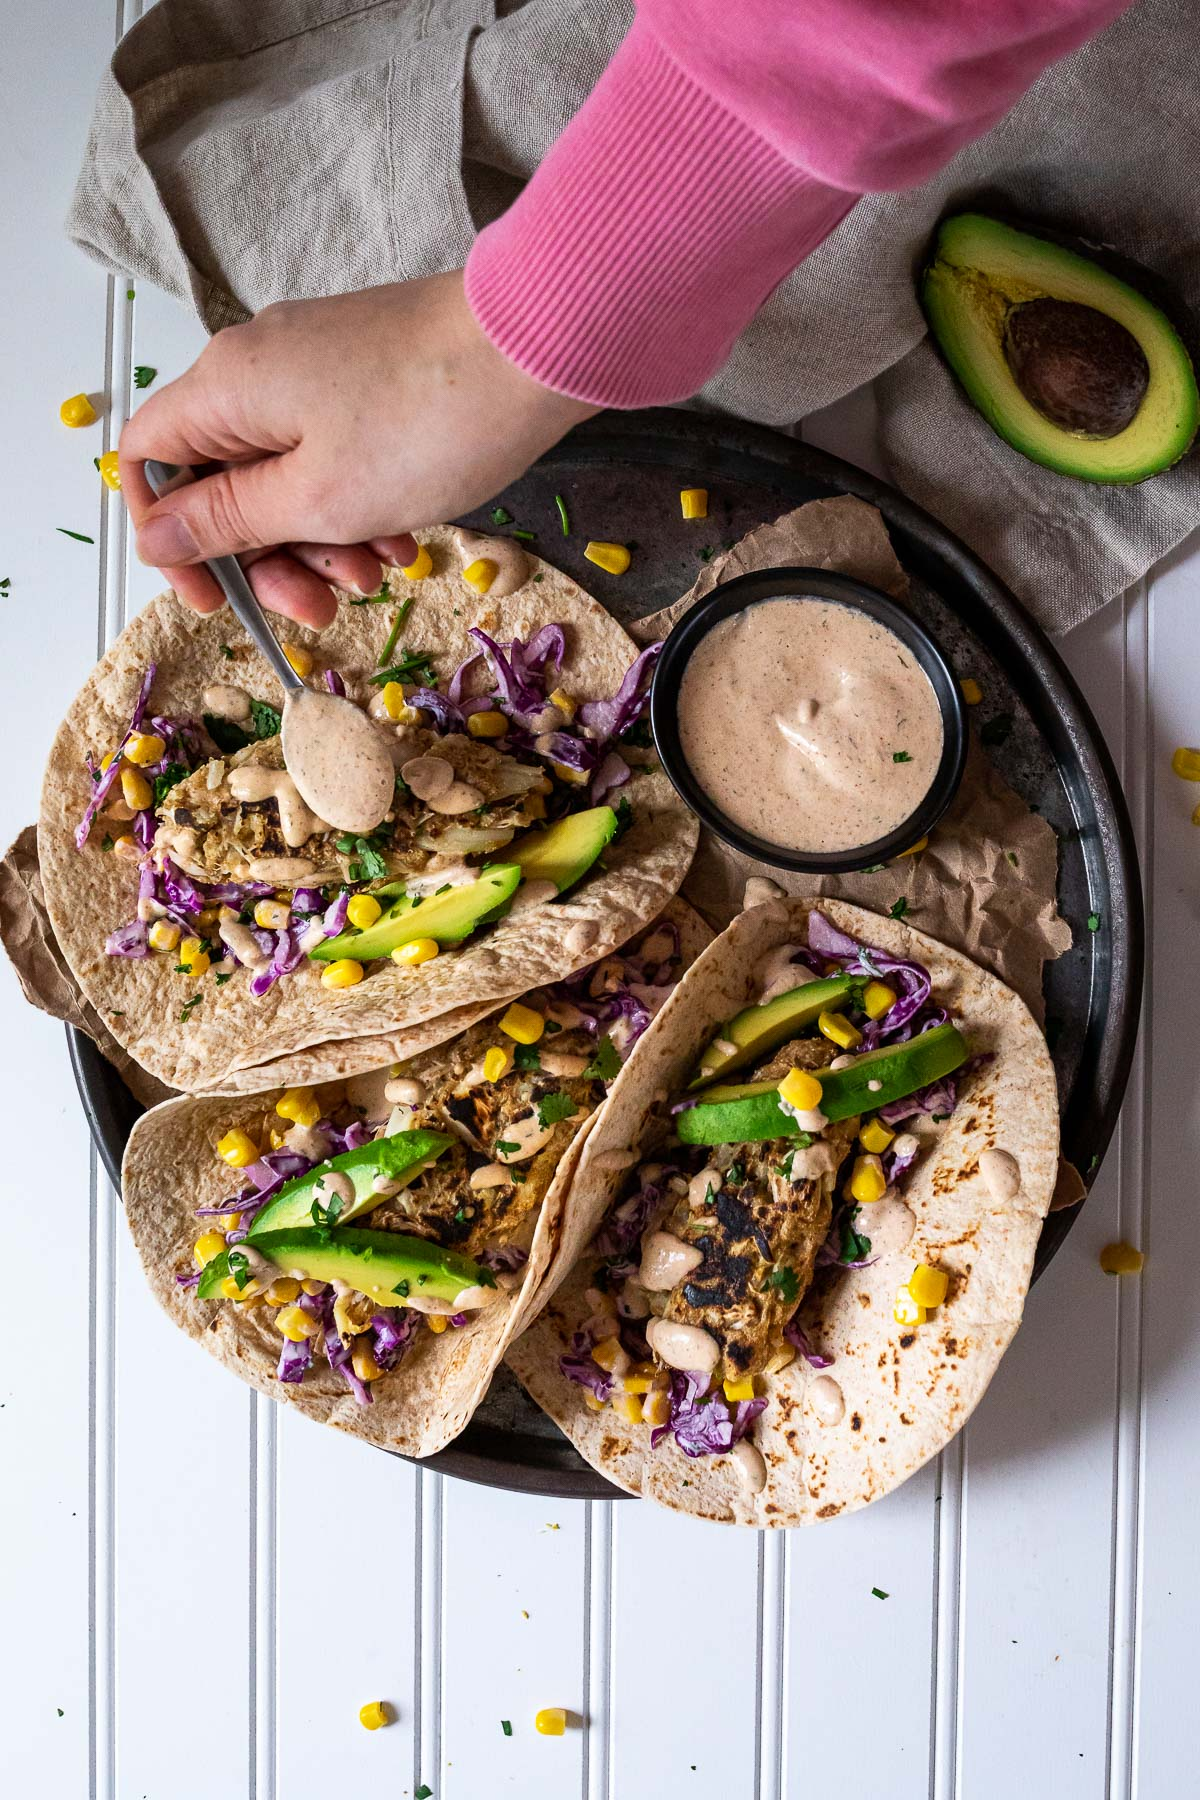 Vegan Fish Taco Platter with Sauce. Pouring some sauce over one of the tacos.